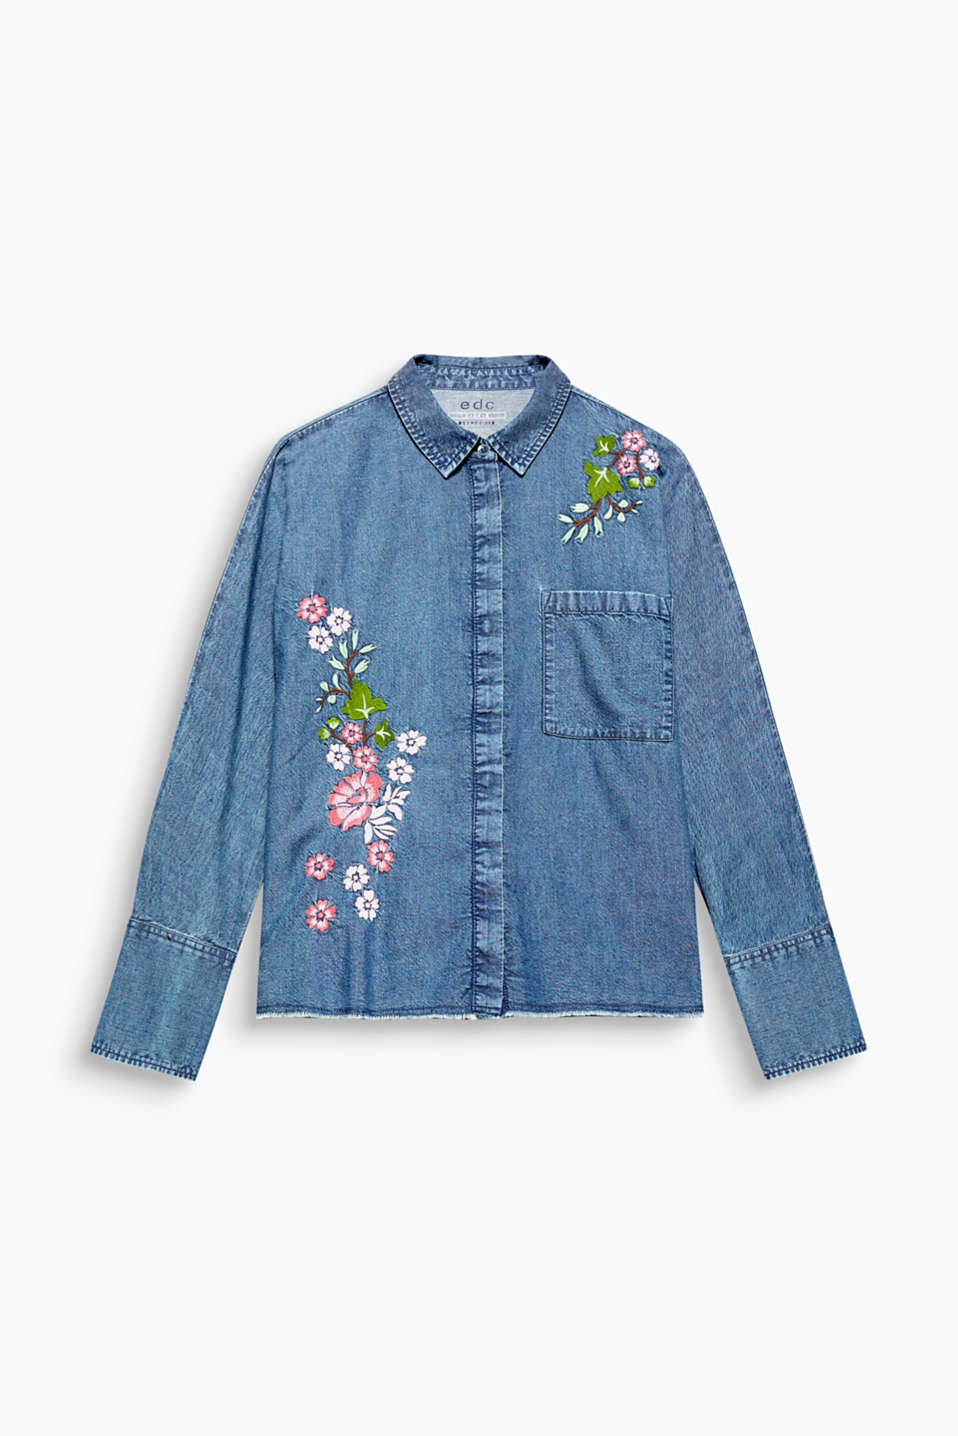 This boxy cut denim blouse with a florally embroidered front section oozes a feminine coolness, in 100% cotton